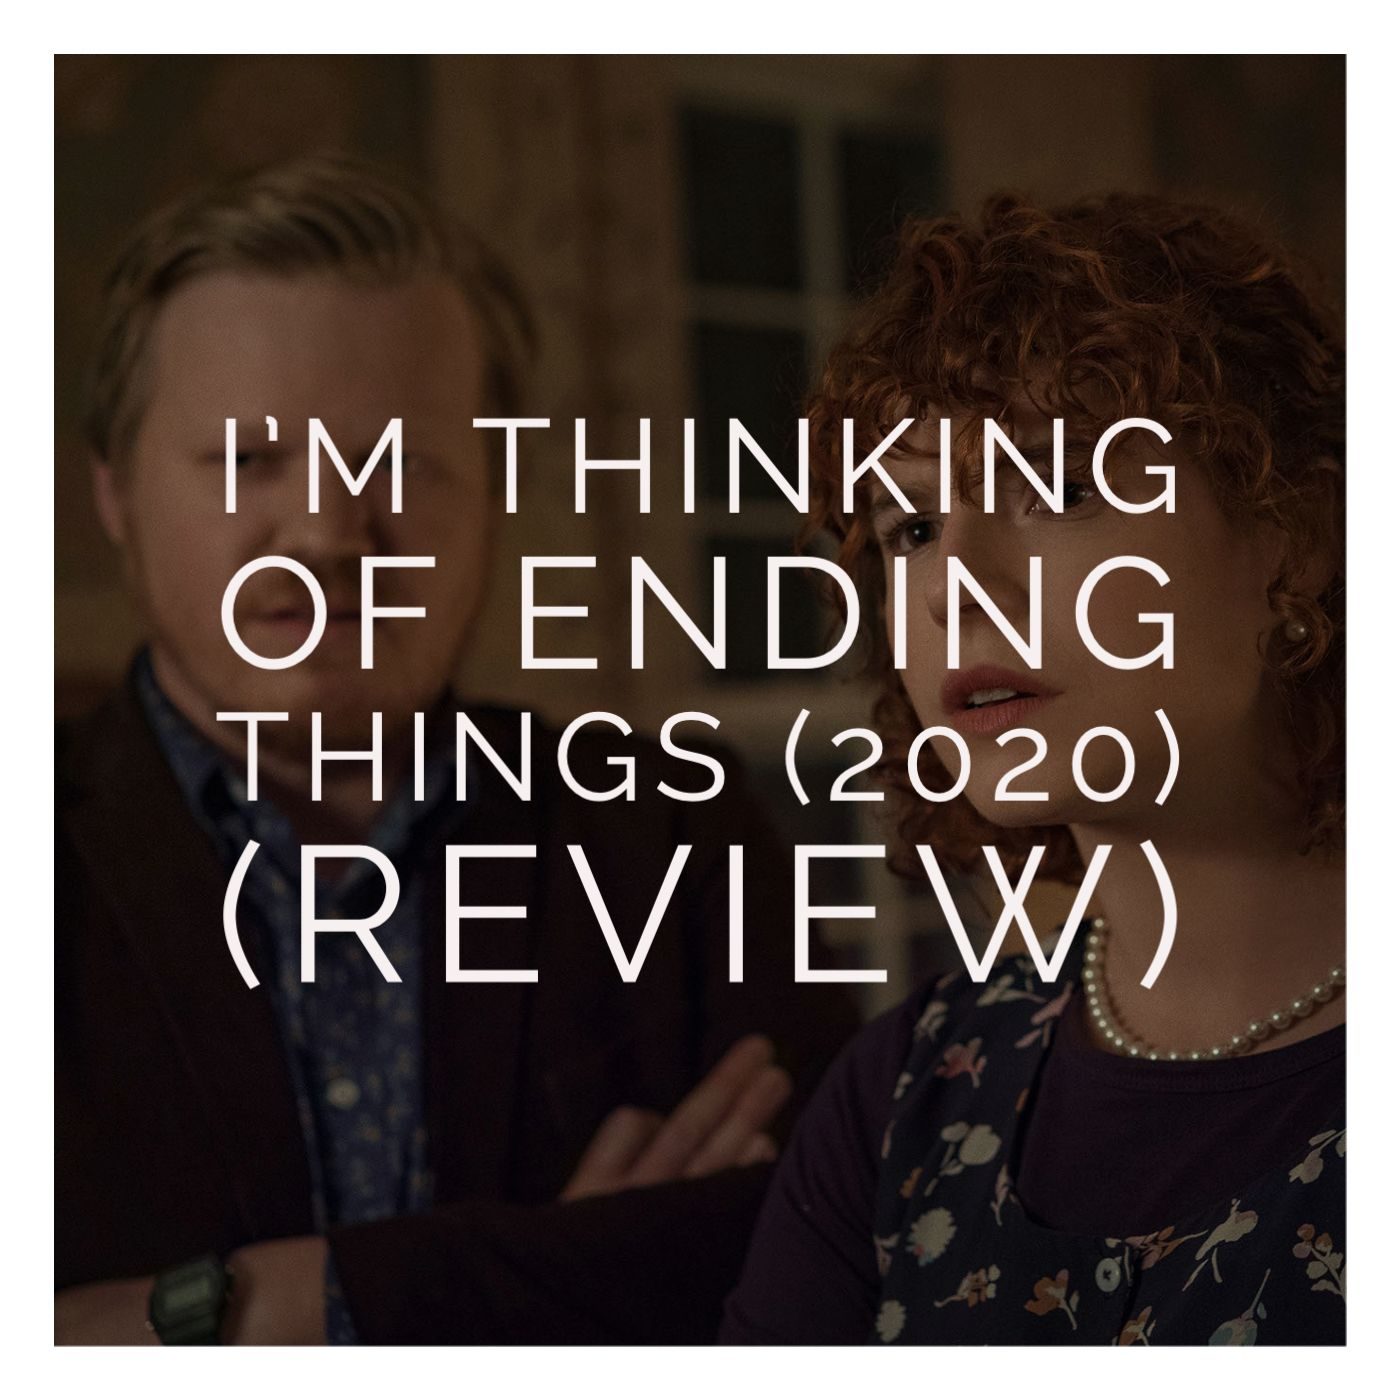 I'm Thinking of Ending Things (2020) (Review)